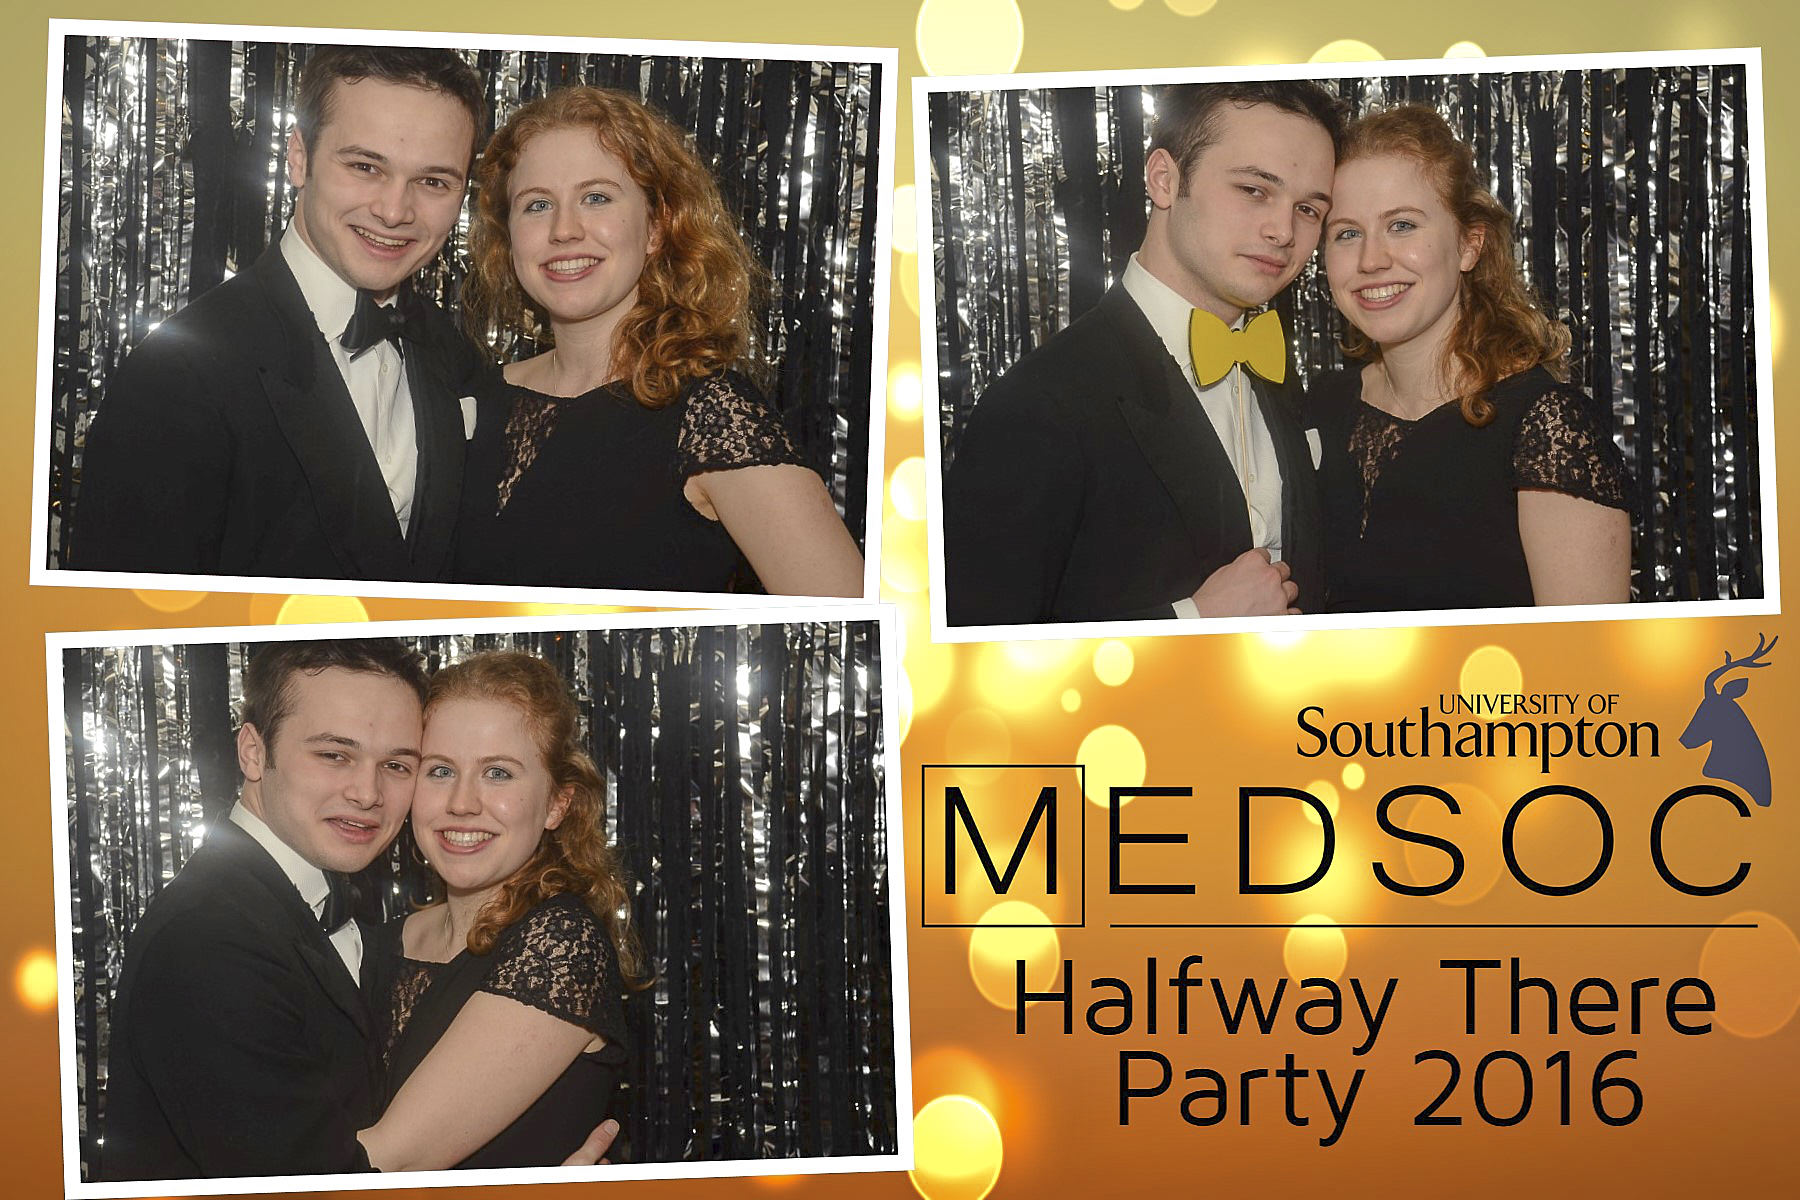 MedSoc Halfway There Party 2016 DS001615.jpg